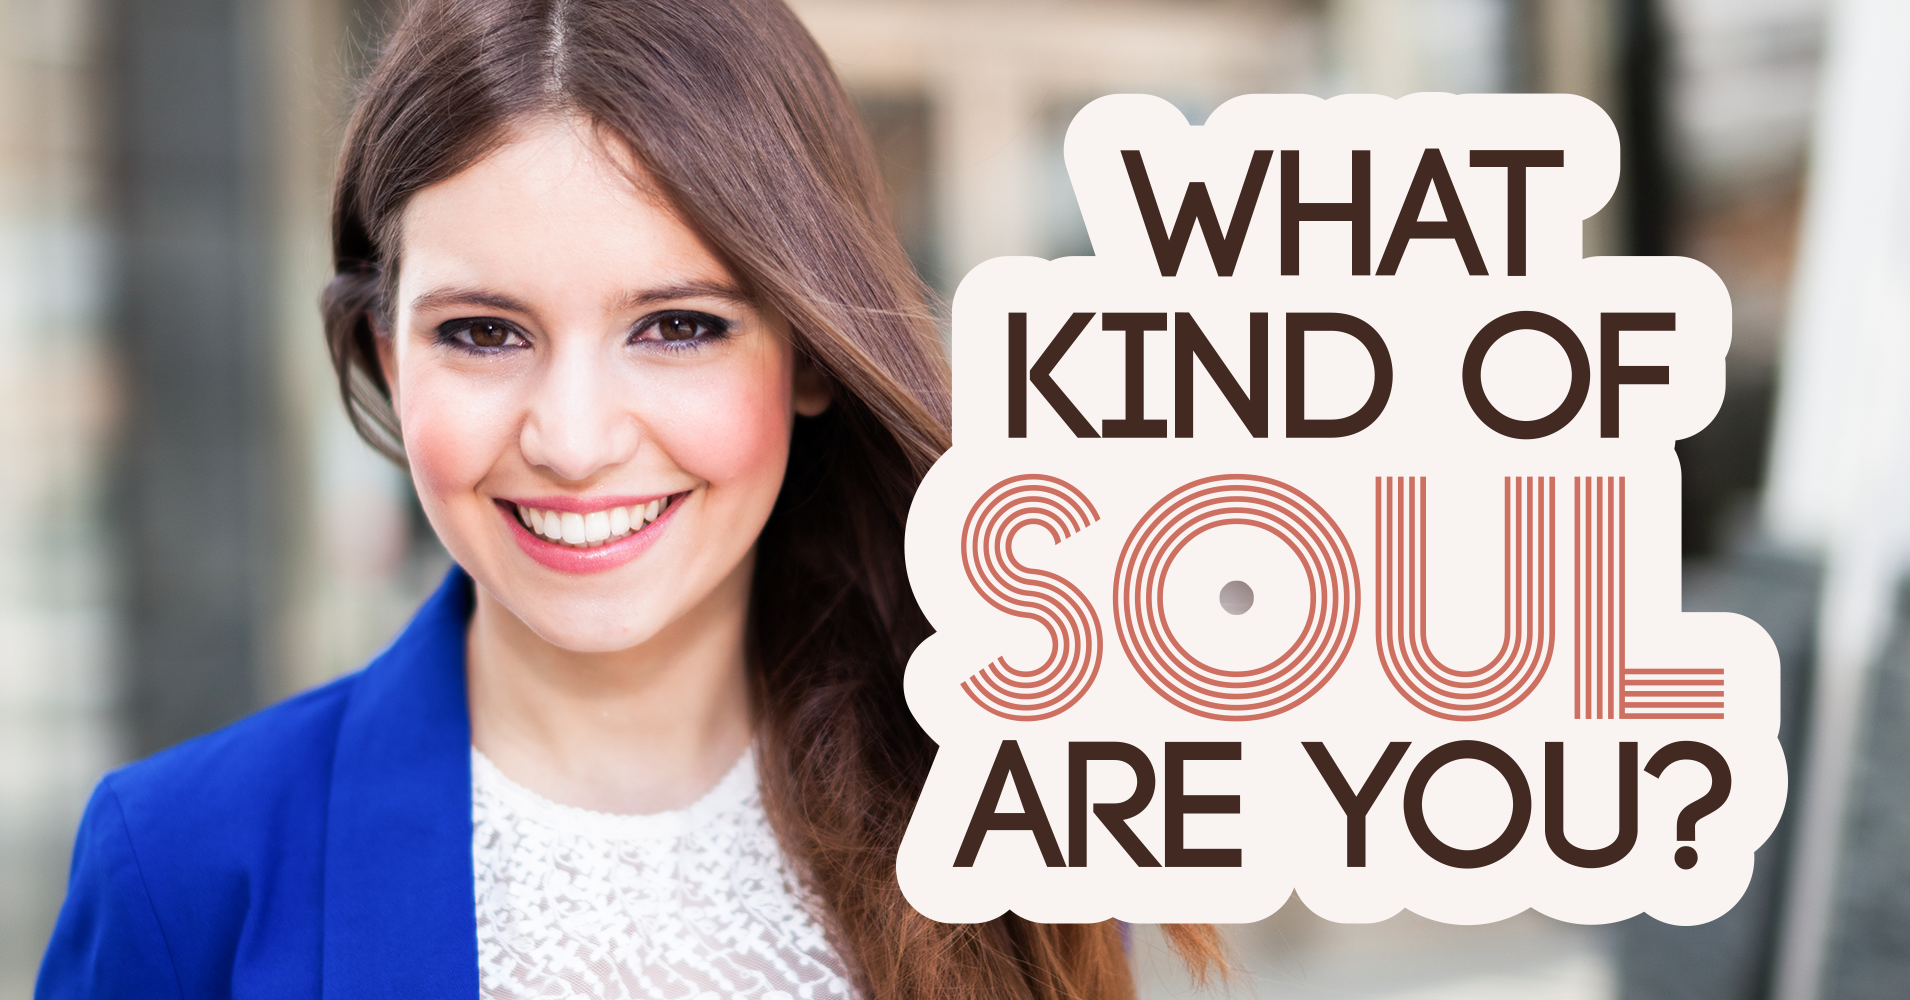 What Kind of Soul Are You? - Quiz - Quizony com